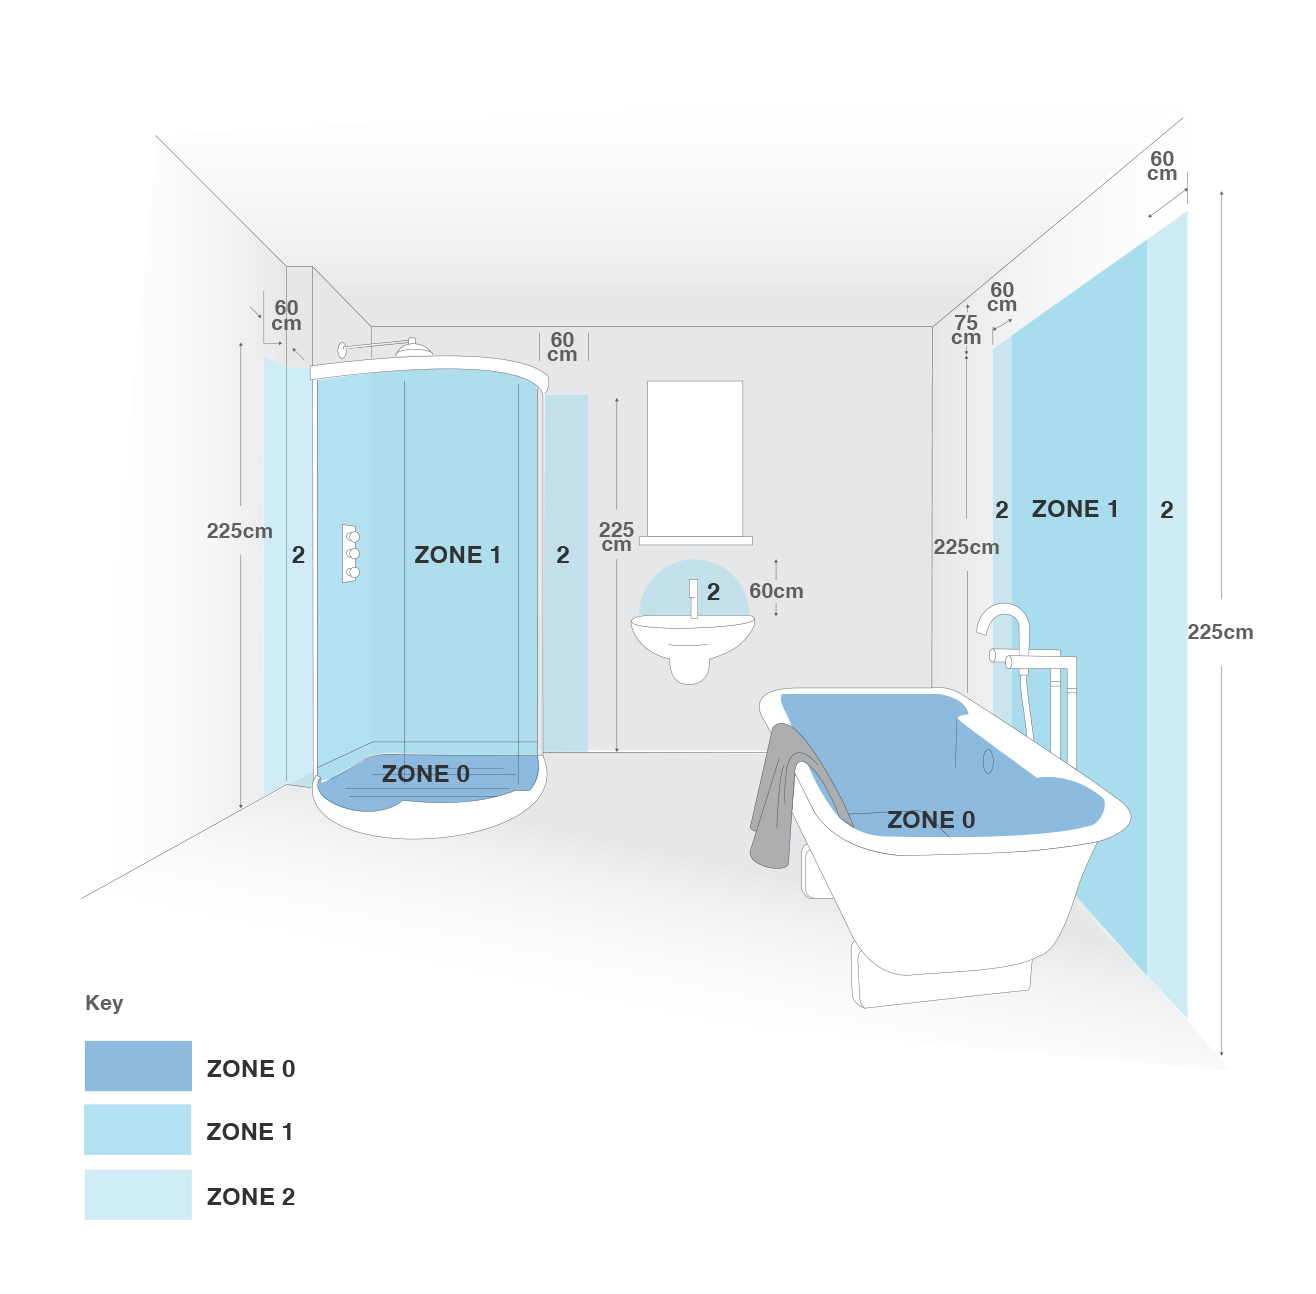 Mr resistor lighting for Bathroom zones ip rating